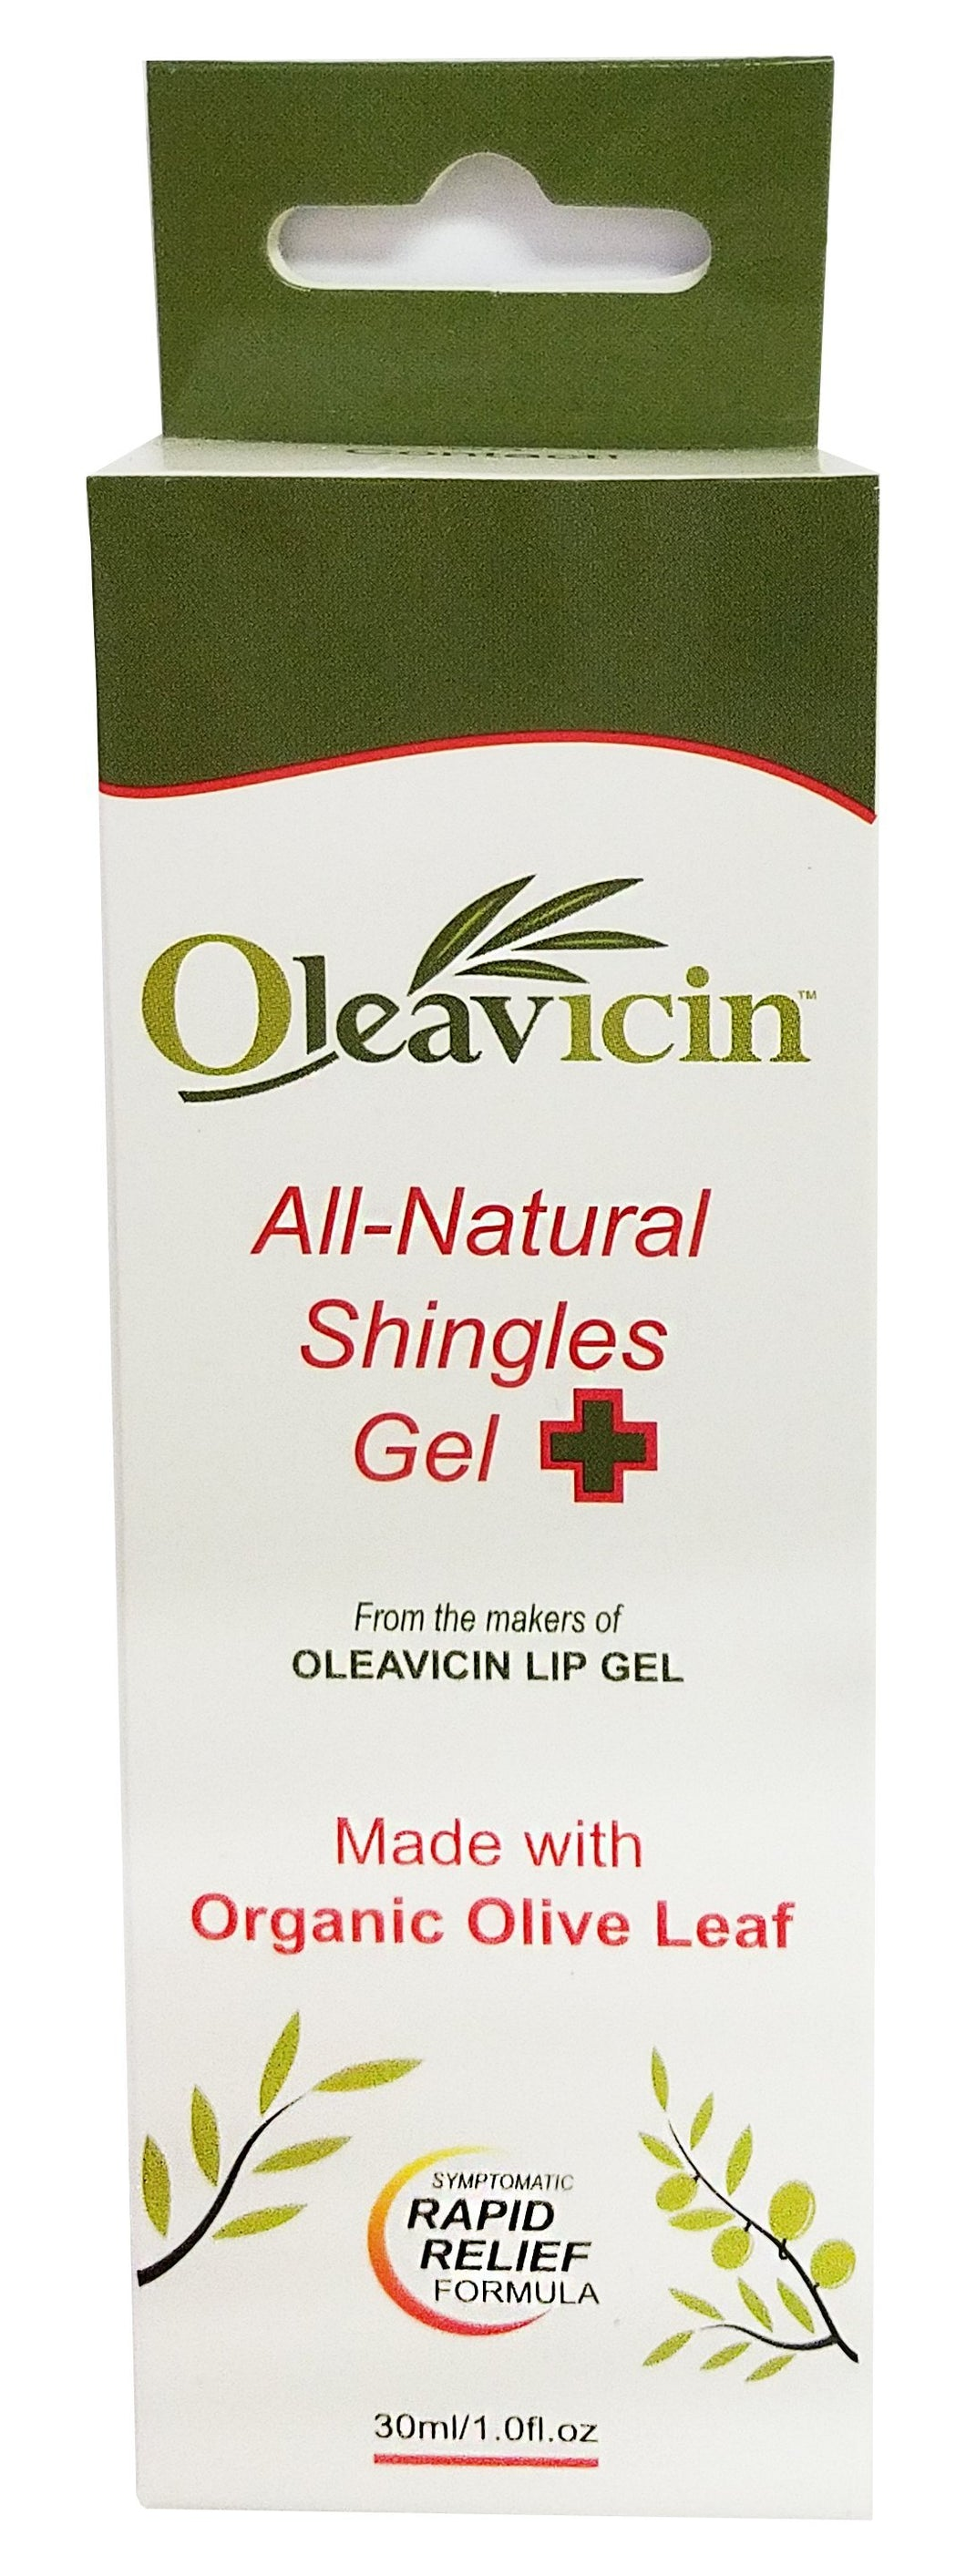 Oleavicin Shingles Relief Gel - Antibacterial - Nerve Pain Relief, Rash, Anti-Itch Treatment - Relieve Itchy Dry Skin, 1 fl oz